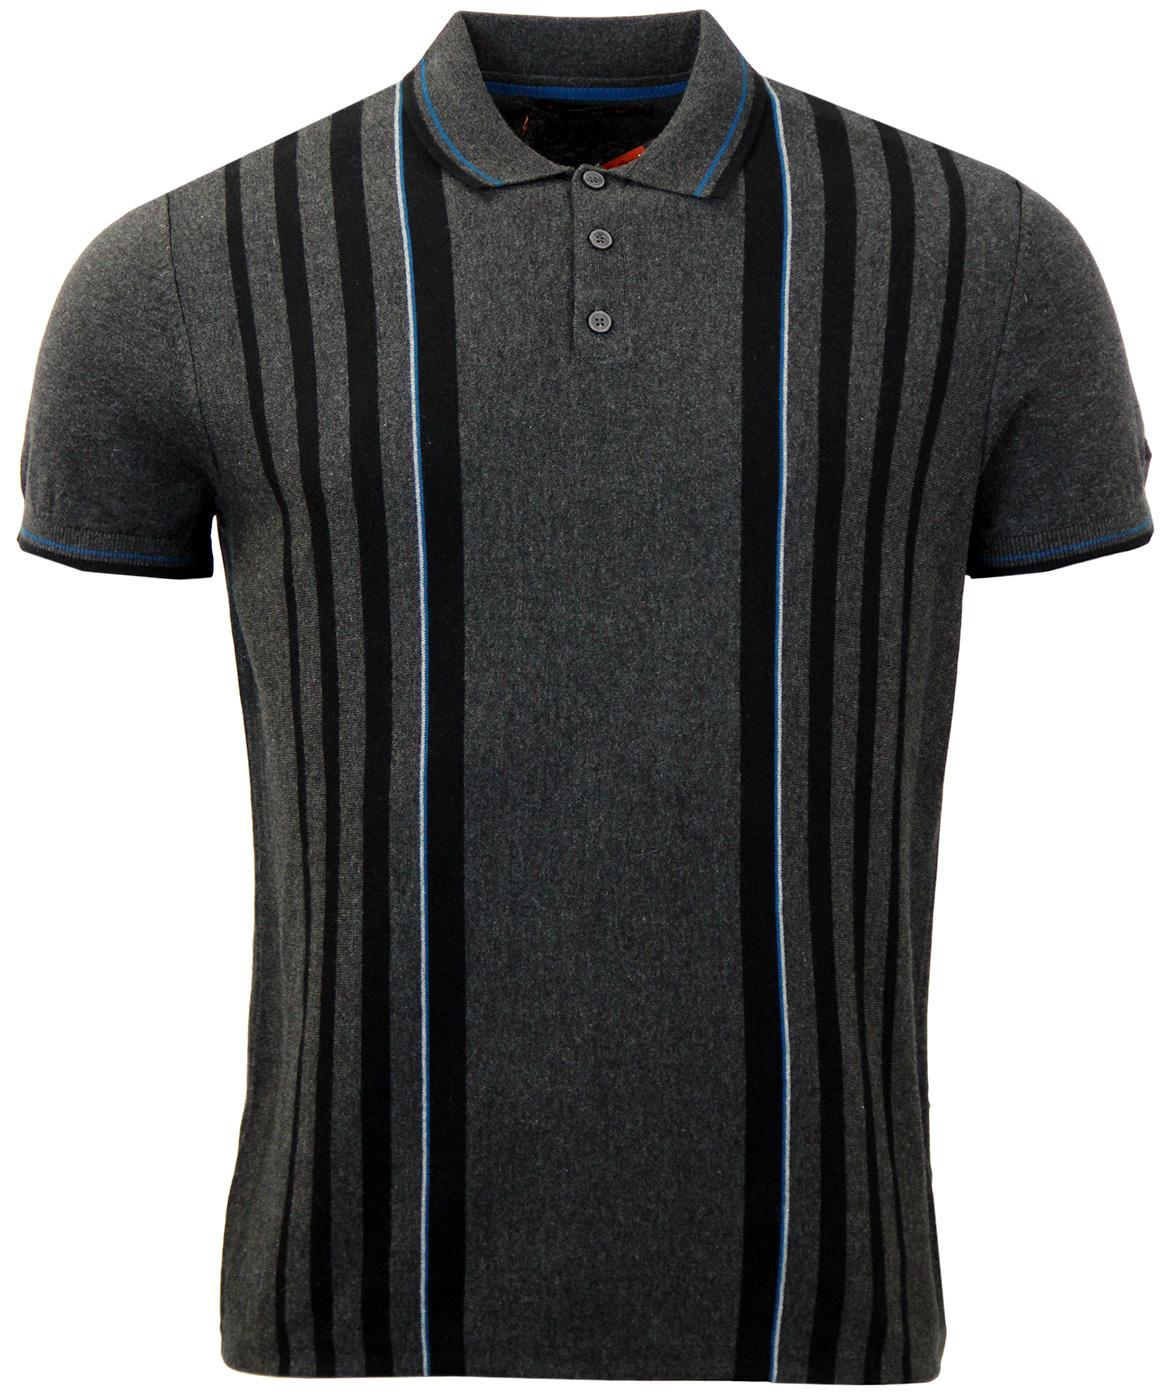 BEN SHERMAN Retro Mod Stripe Panel Knit Polo